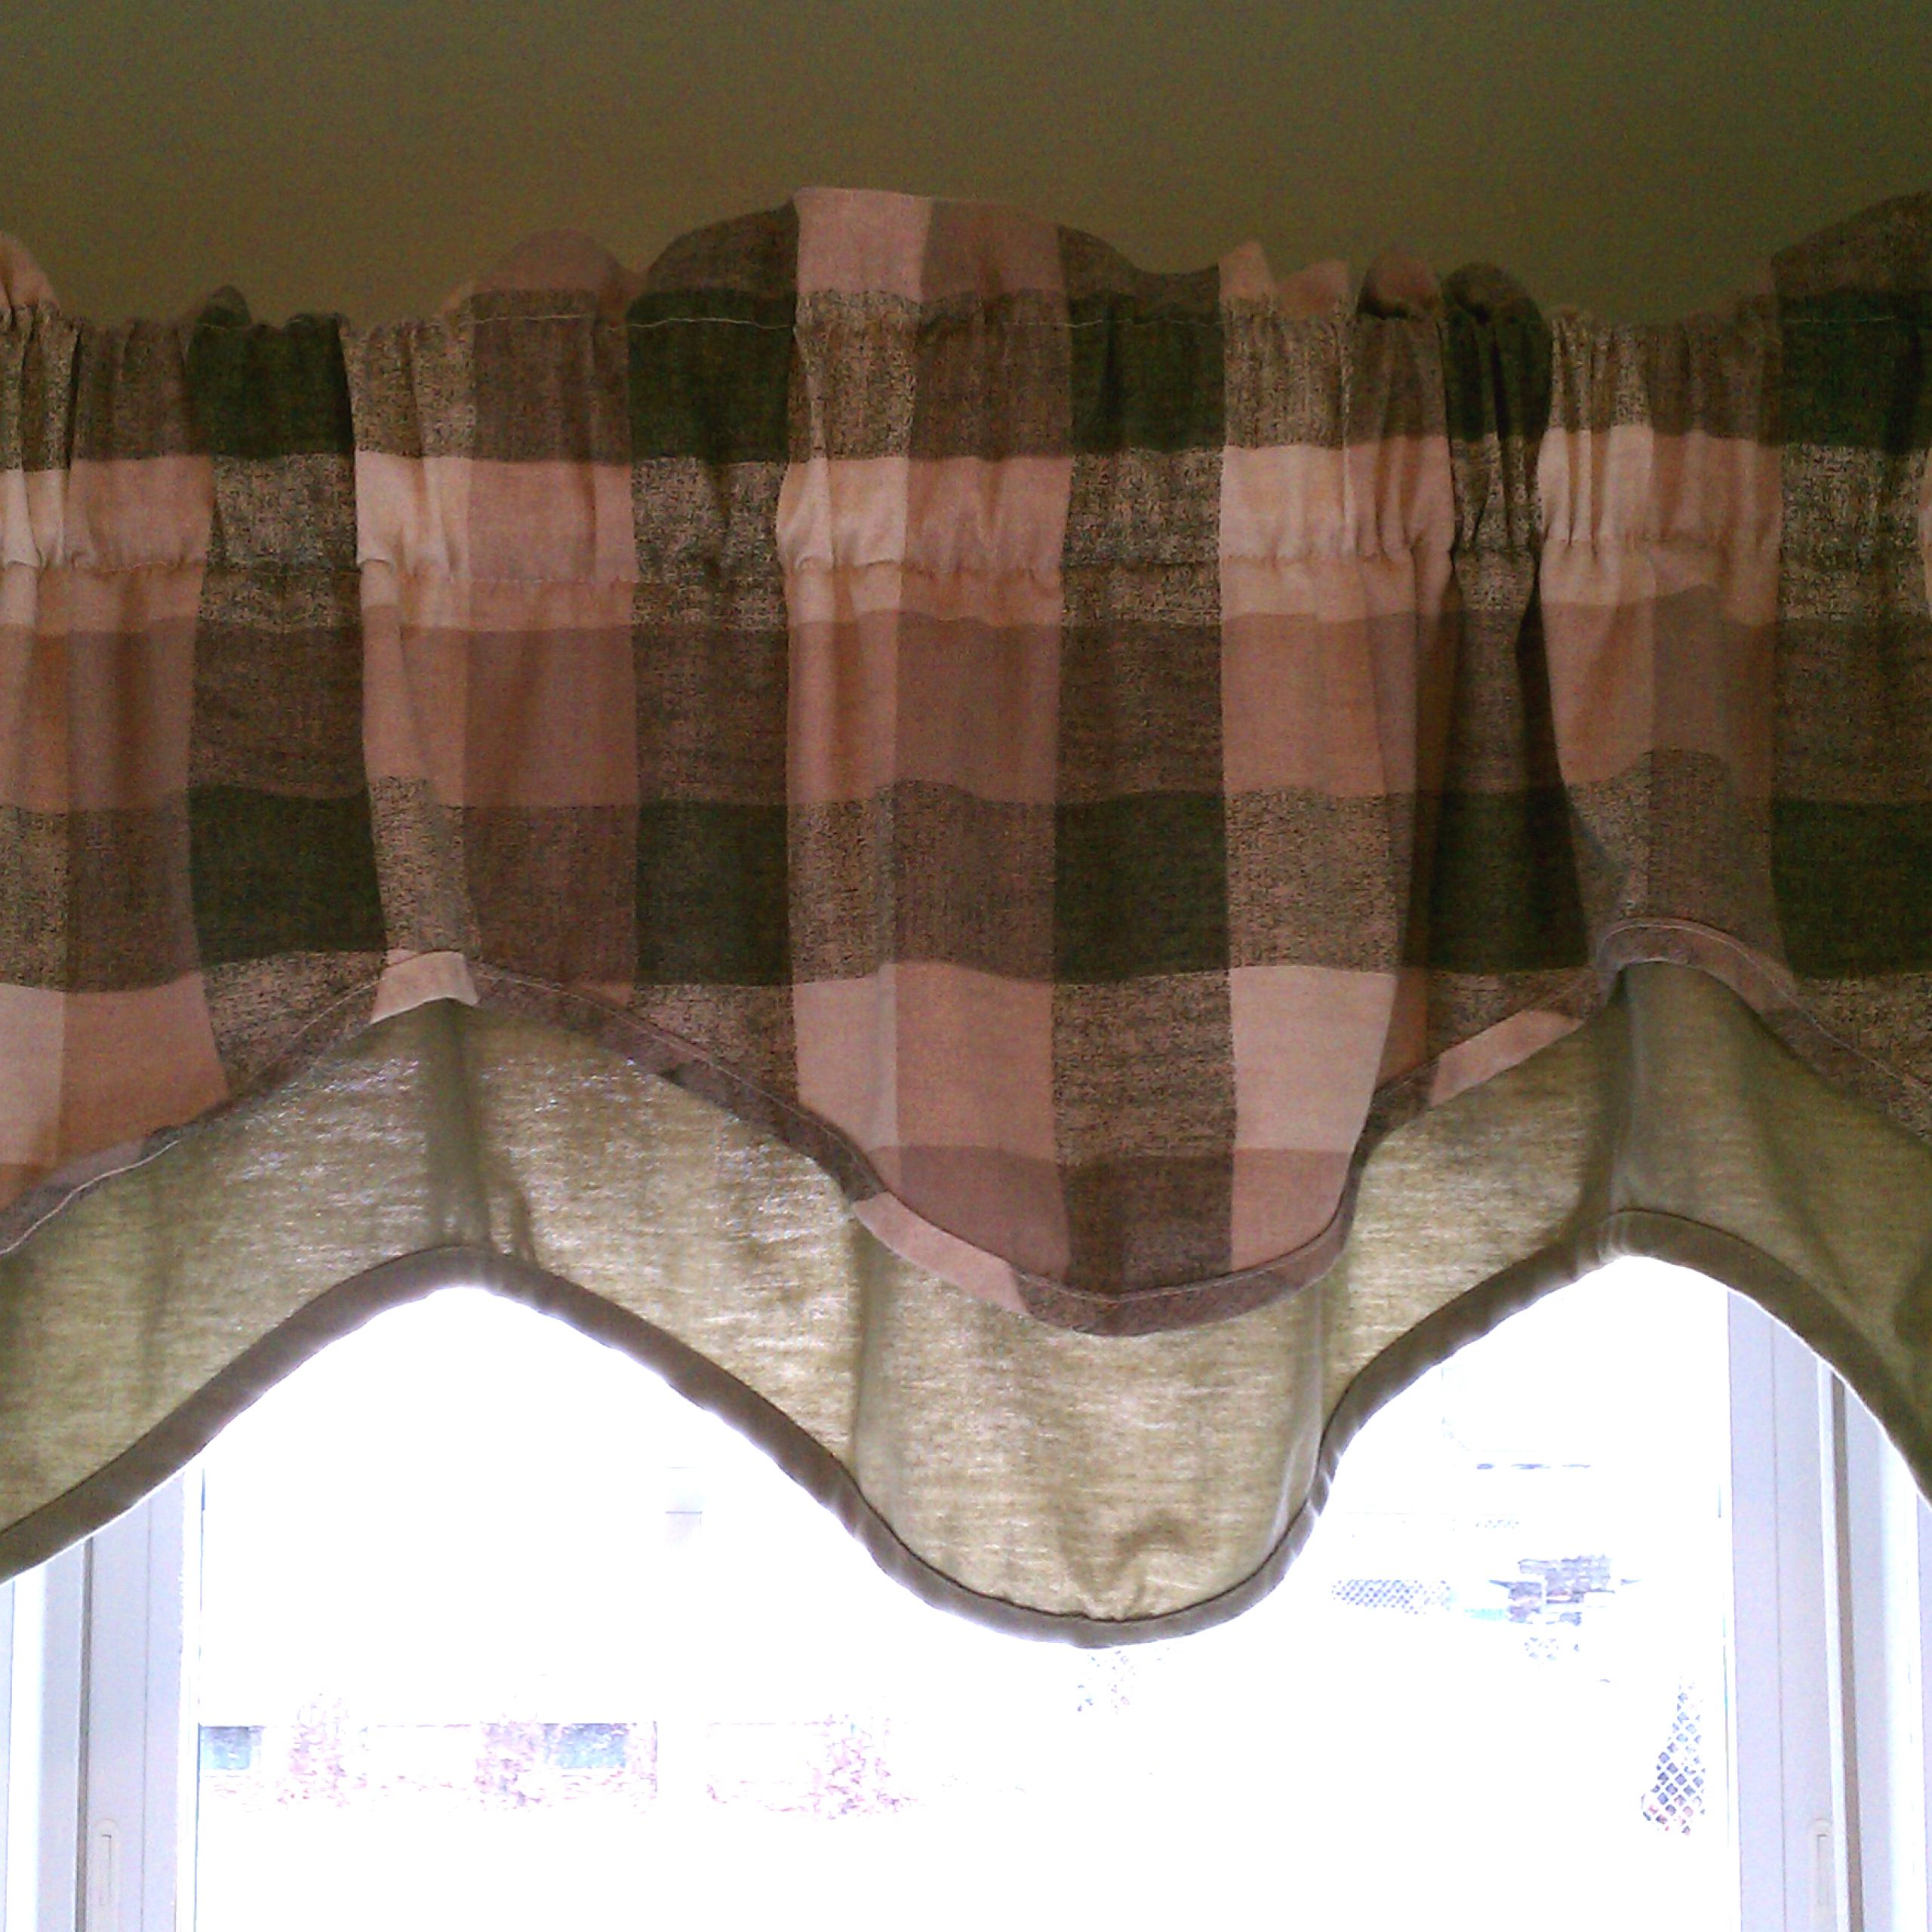 Preferred Vertical Ruffled Waterfall Valances And Curtain Tiers With Window Valance – Wikipedia (View 19 of 20)